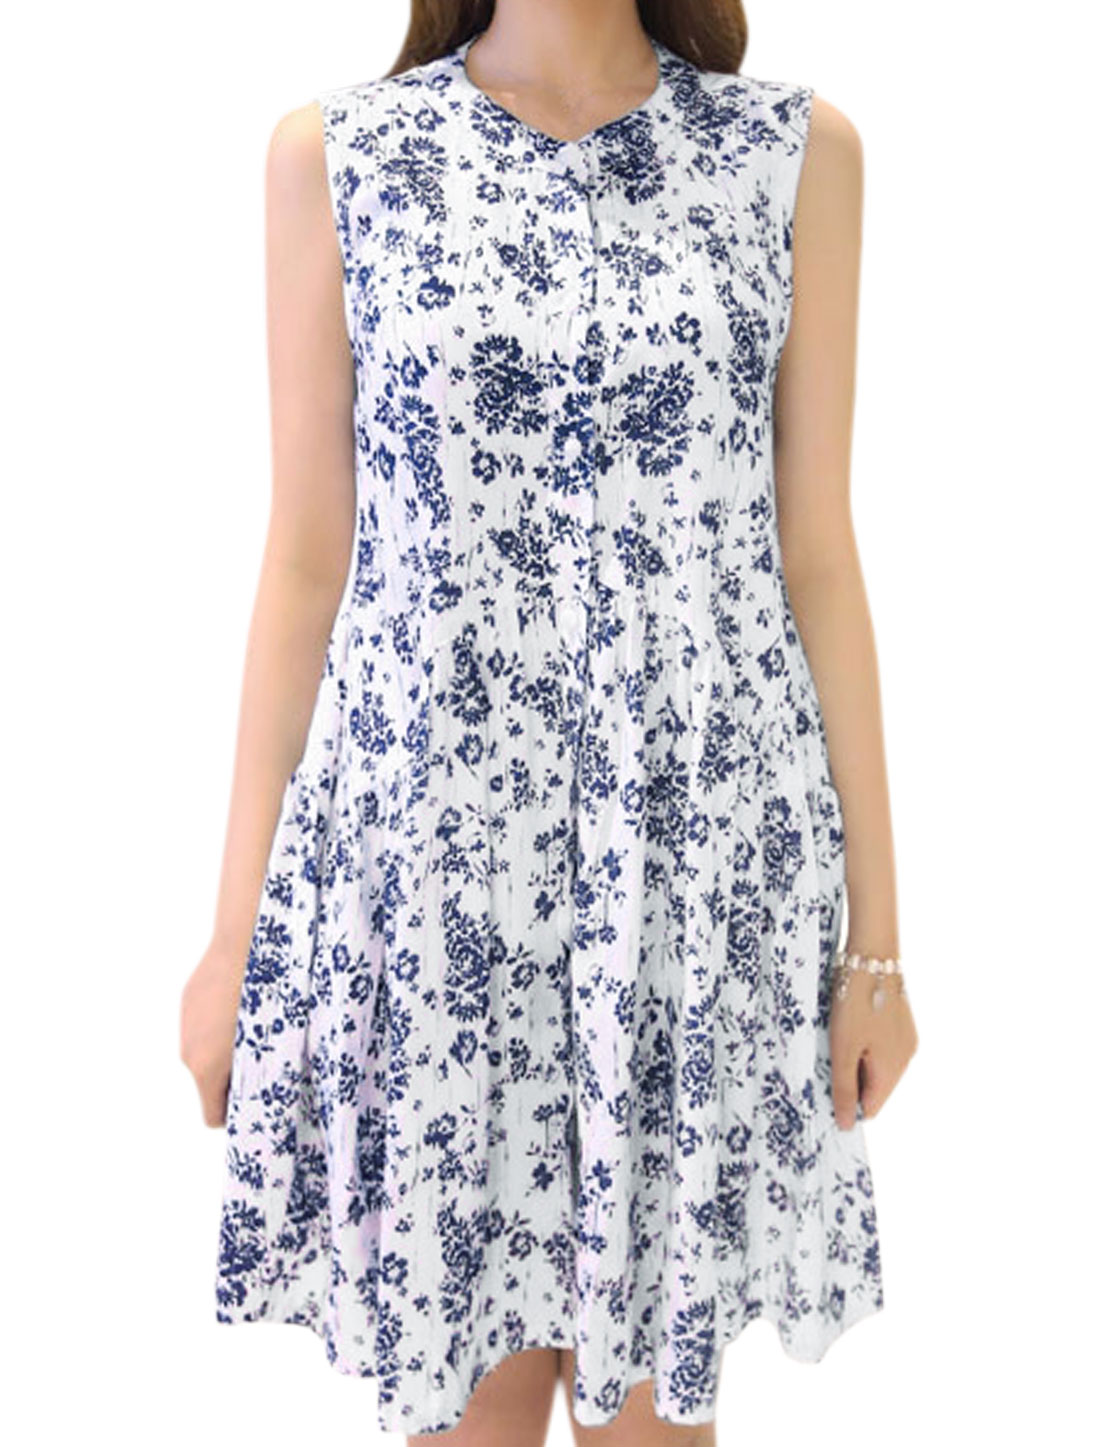 Women Floral Prints Button Closure Sleeveless Tunic Dress White S